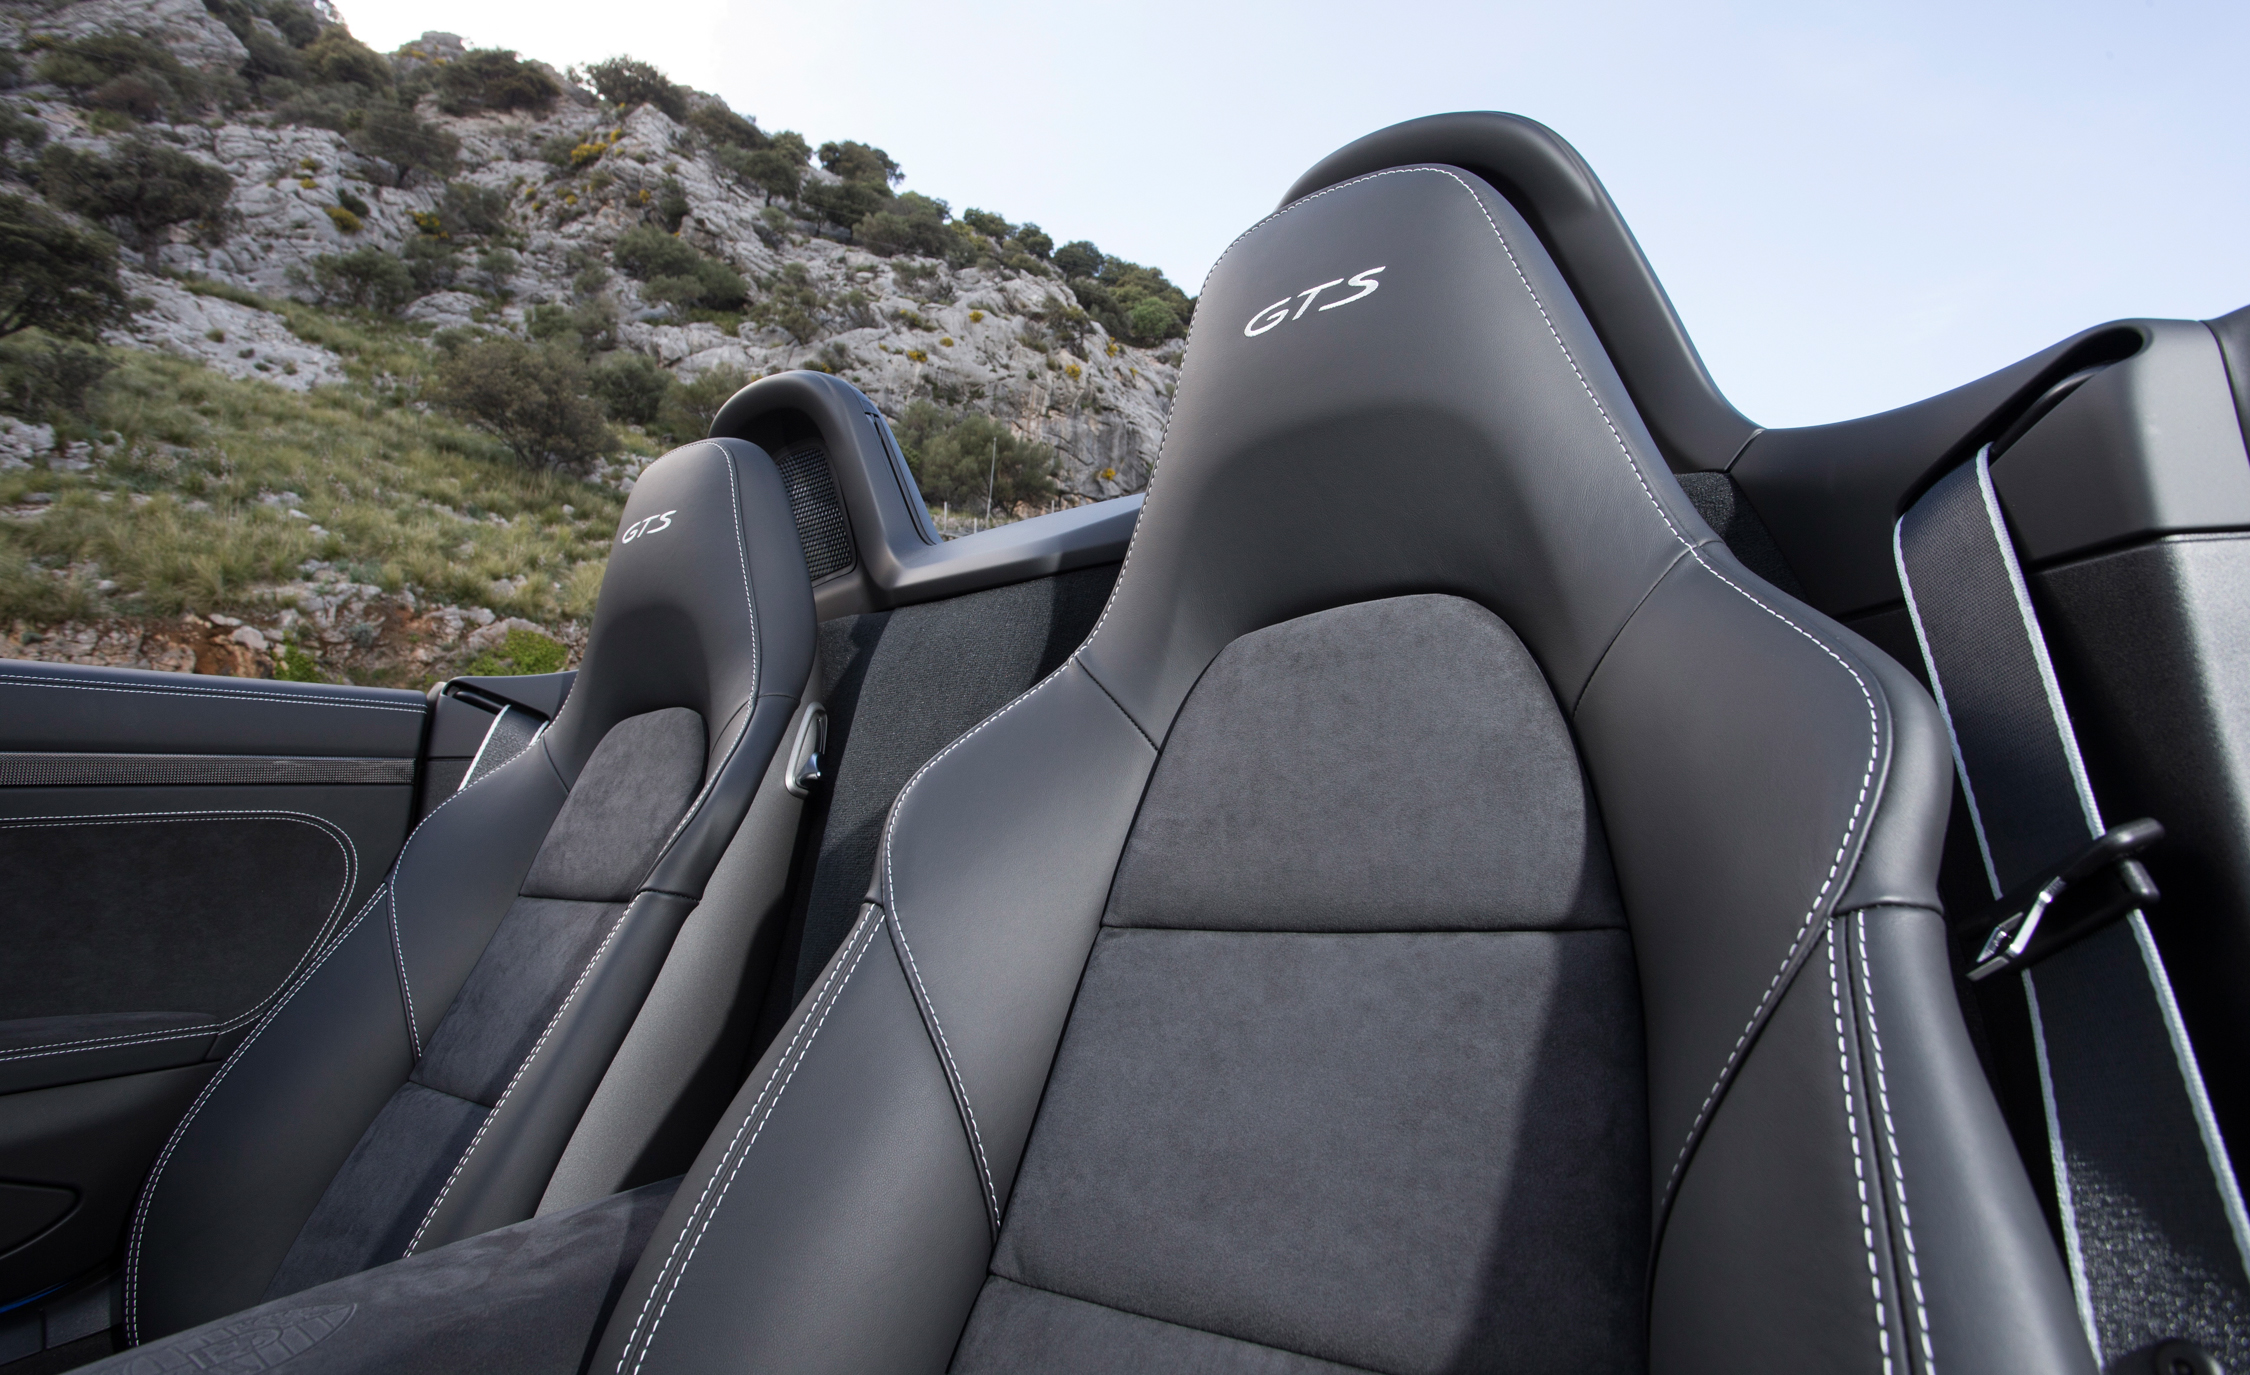 2015 Porsche Boxster GTS Seats (Photo 24 of 24)